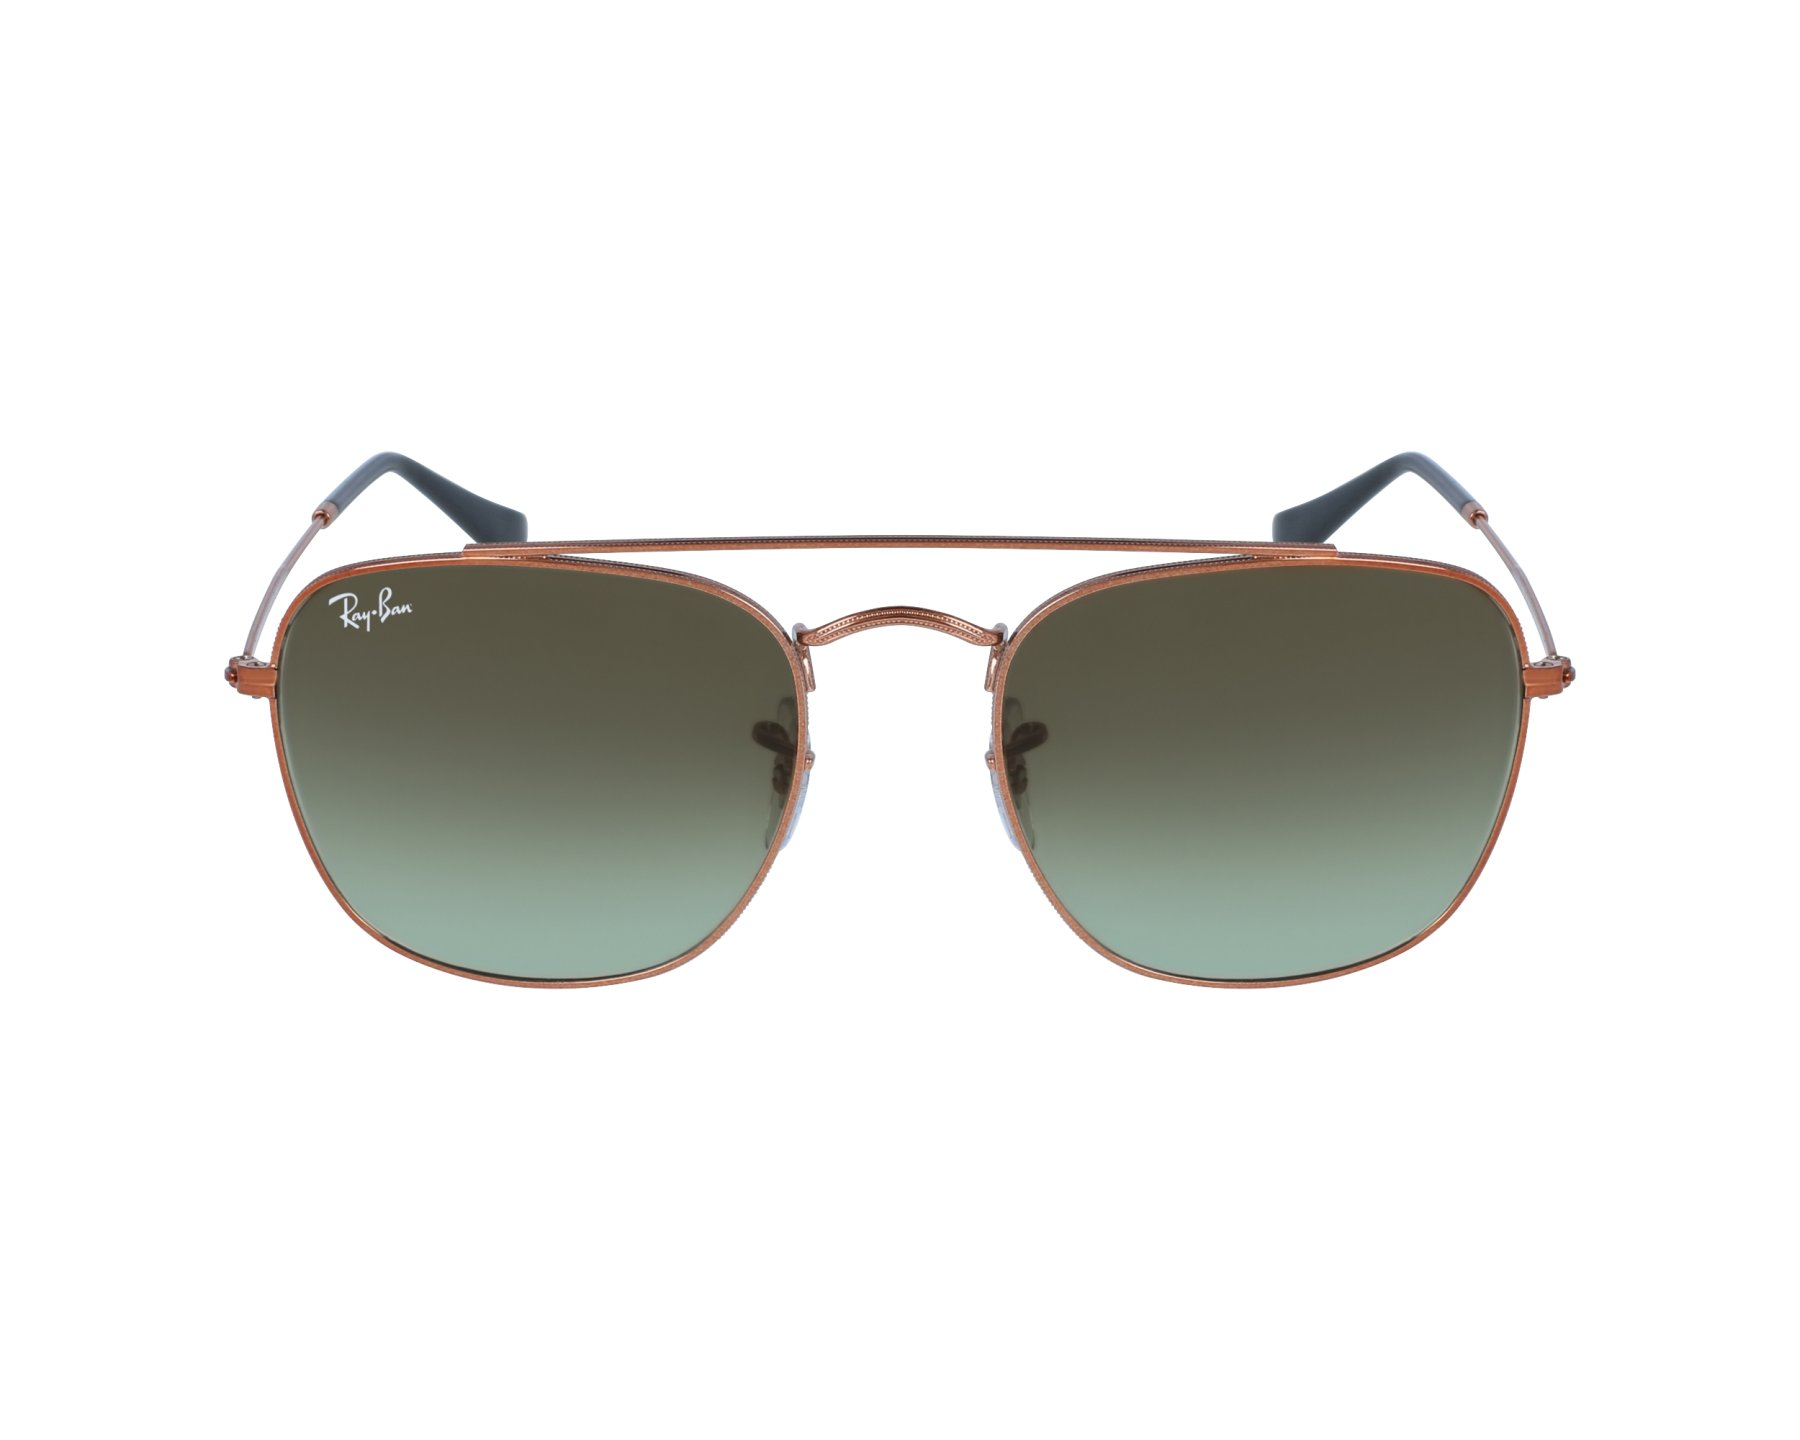 Ray-Ban RB3557 Sonnenbrille Gold 001 54mm 1iVl6J4B3